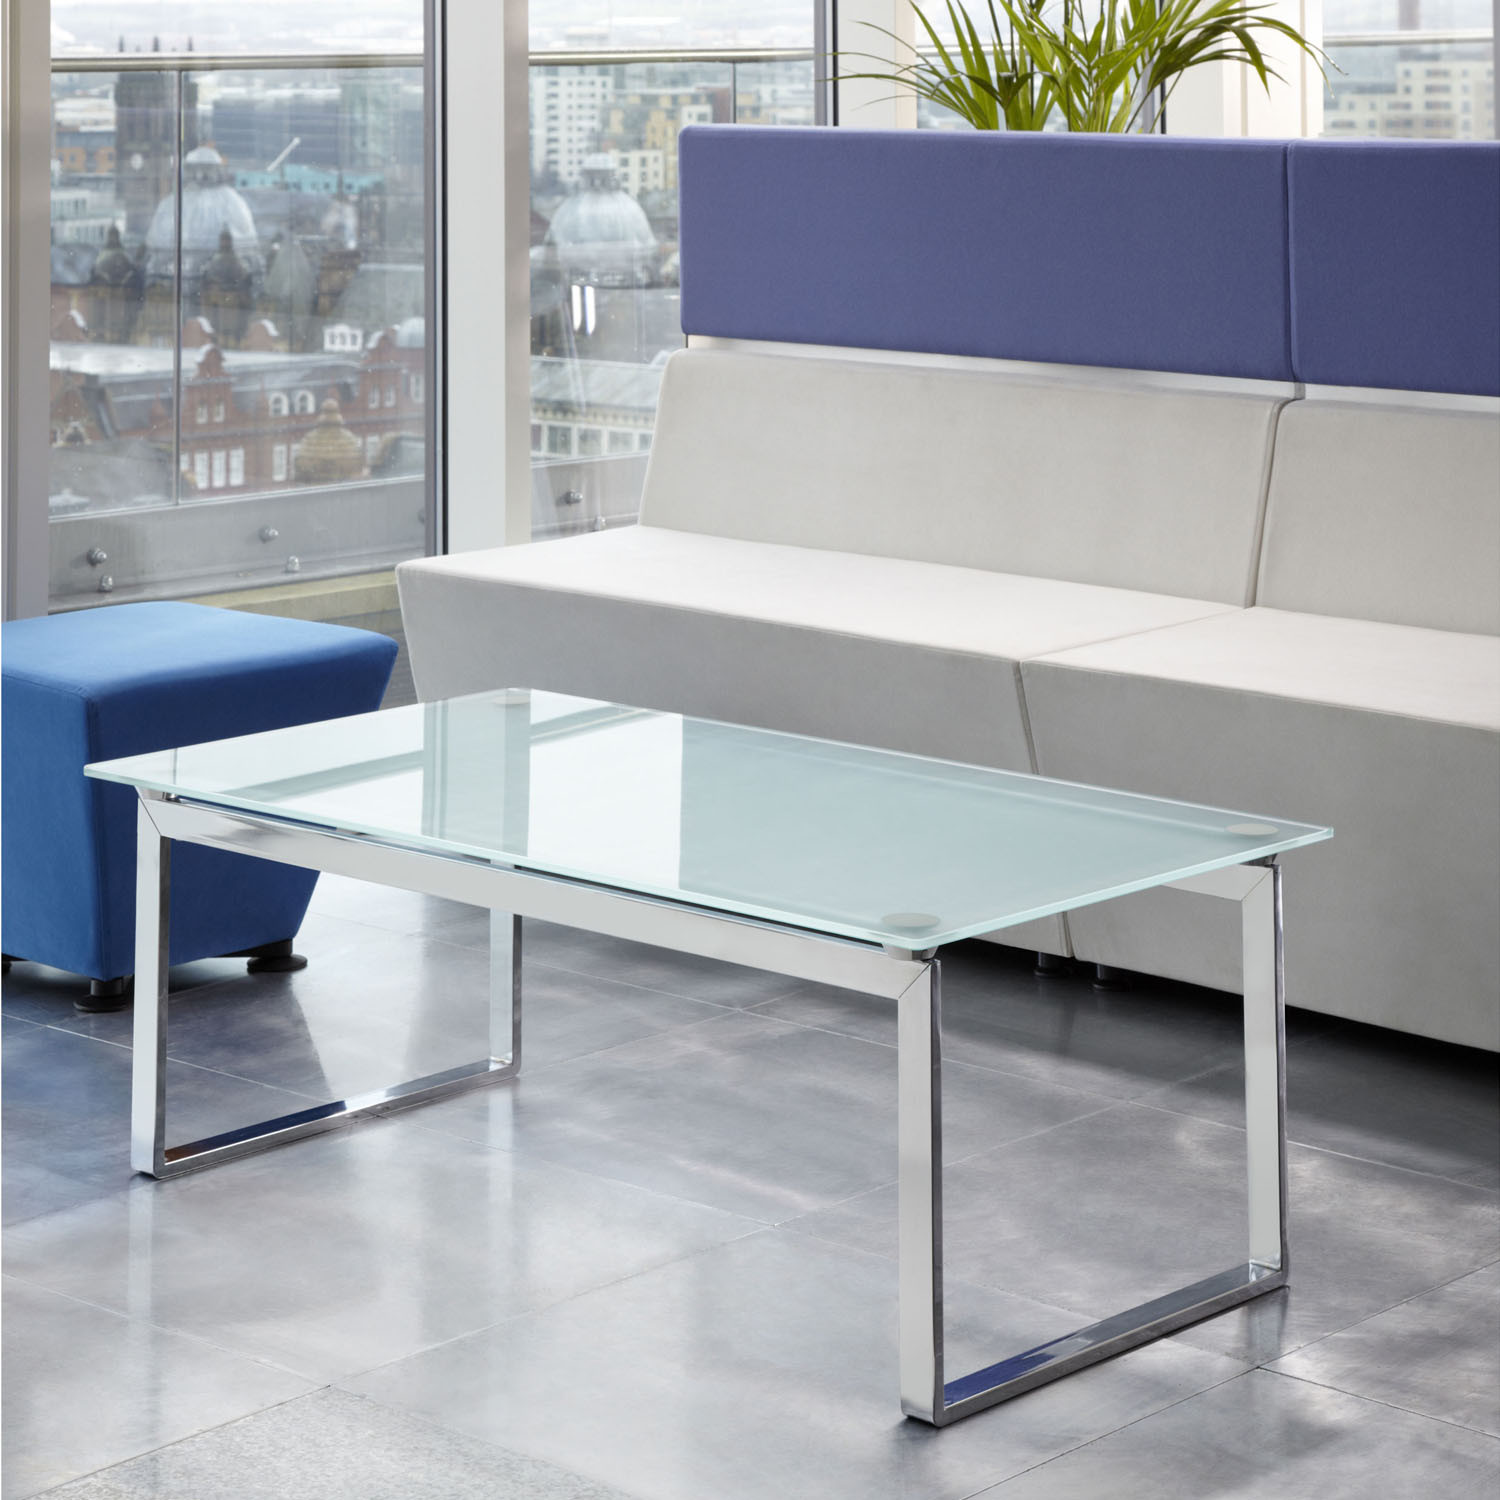 Equity Glass Table for Lounges